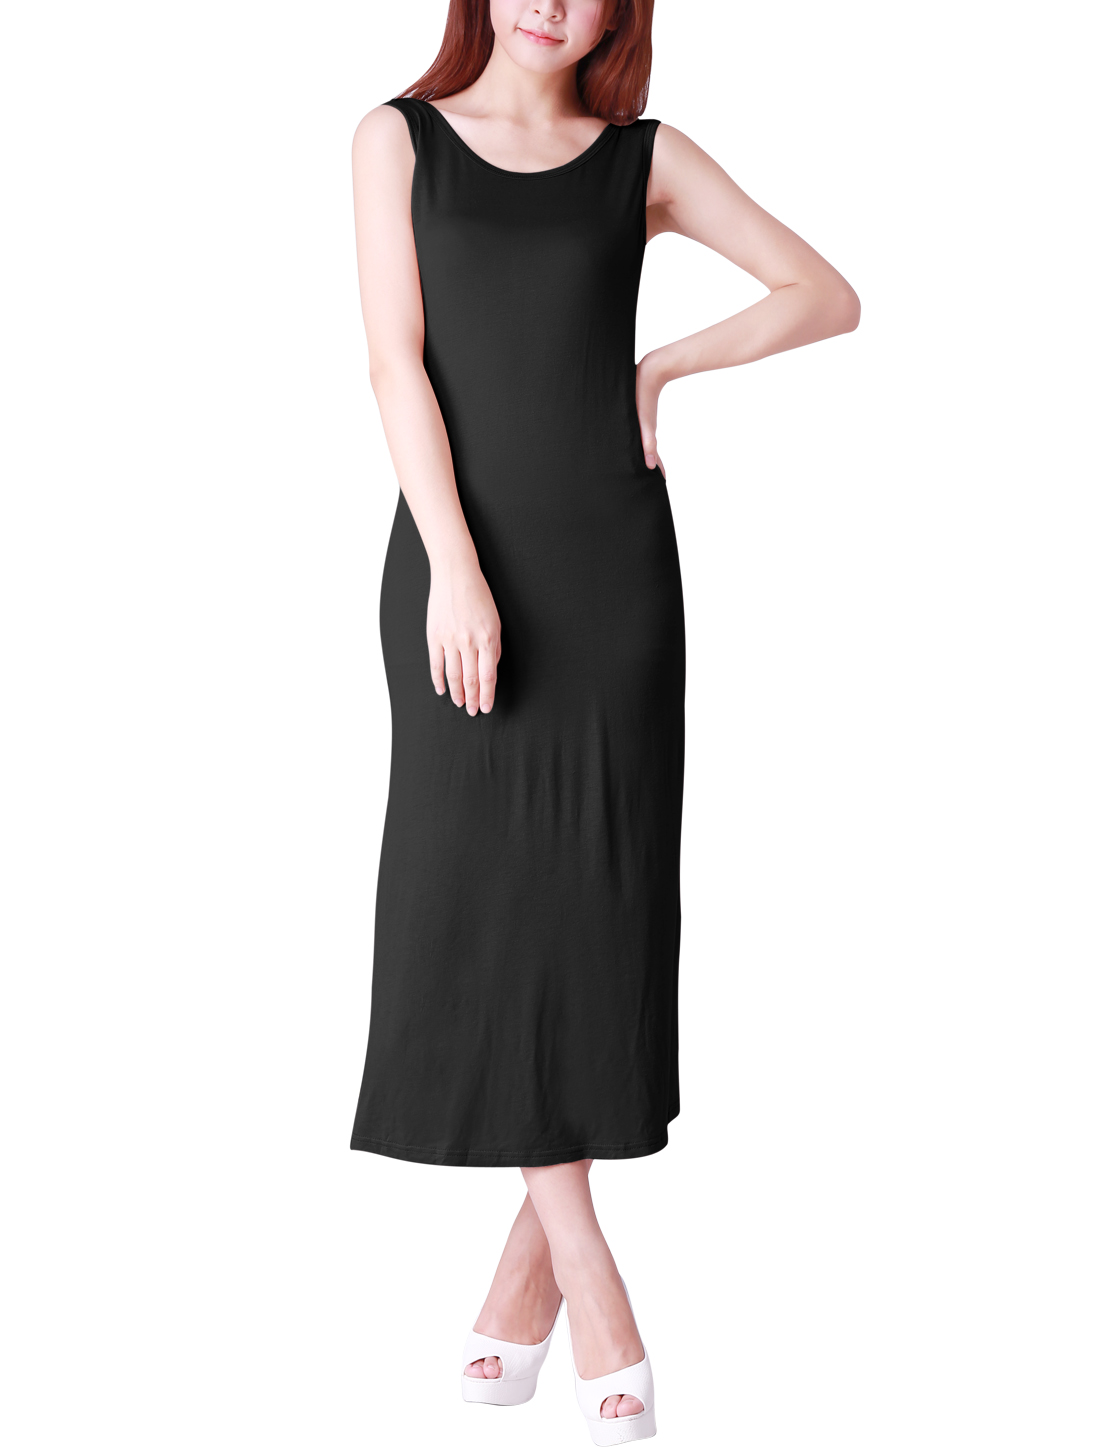 Stylish Pure Black Color Ladies Backless Full-Length Dress XL